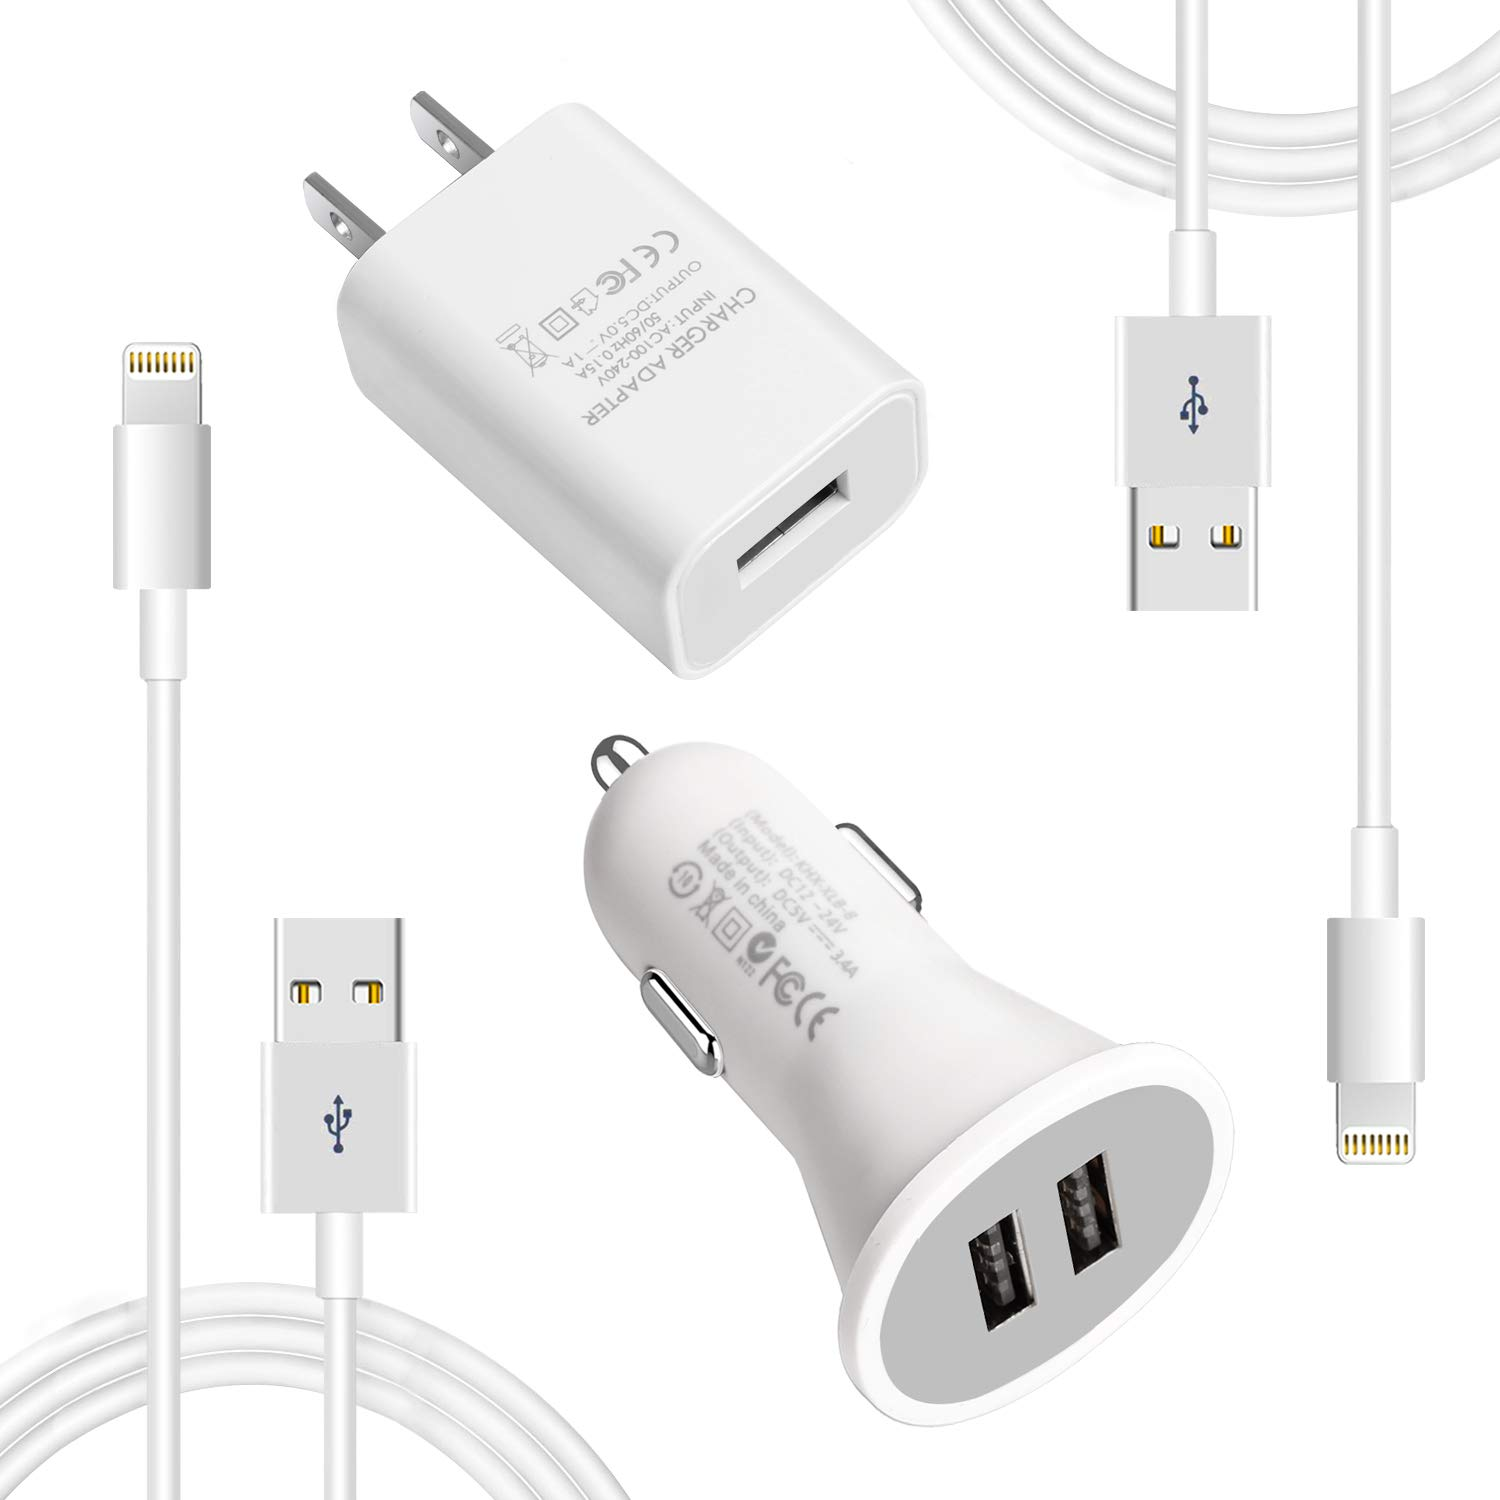 1dee935a380af5 Amazon.com: MFI Certified Wall & iPhone car Charger, Lightning Car Charger  Cable kit for iPhone 7/7plus/8/8plus/xs/xsmax/xr 4 Pack (White): Cell  Phones & ...